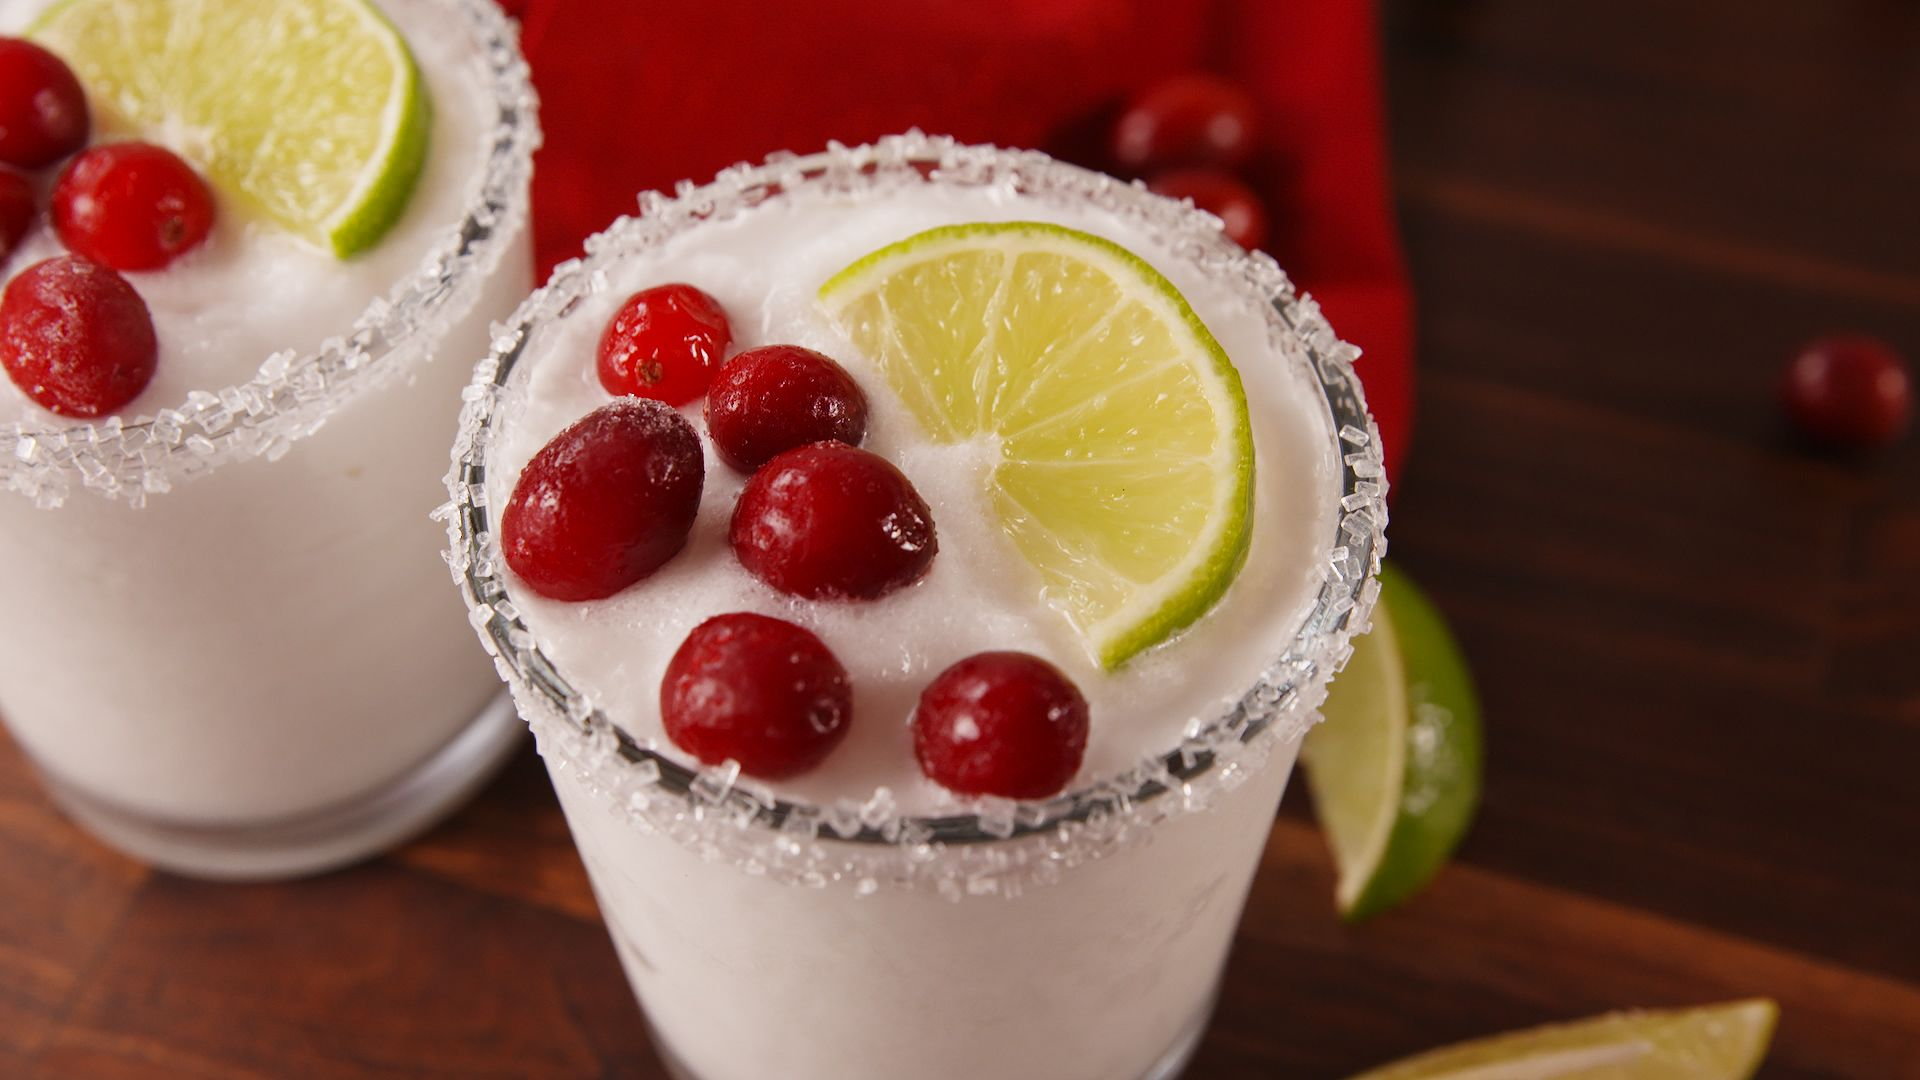 Best White Christmas Margarita Recipe - How to Make White Christmas ...